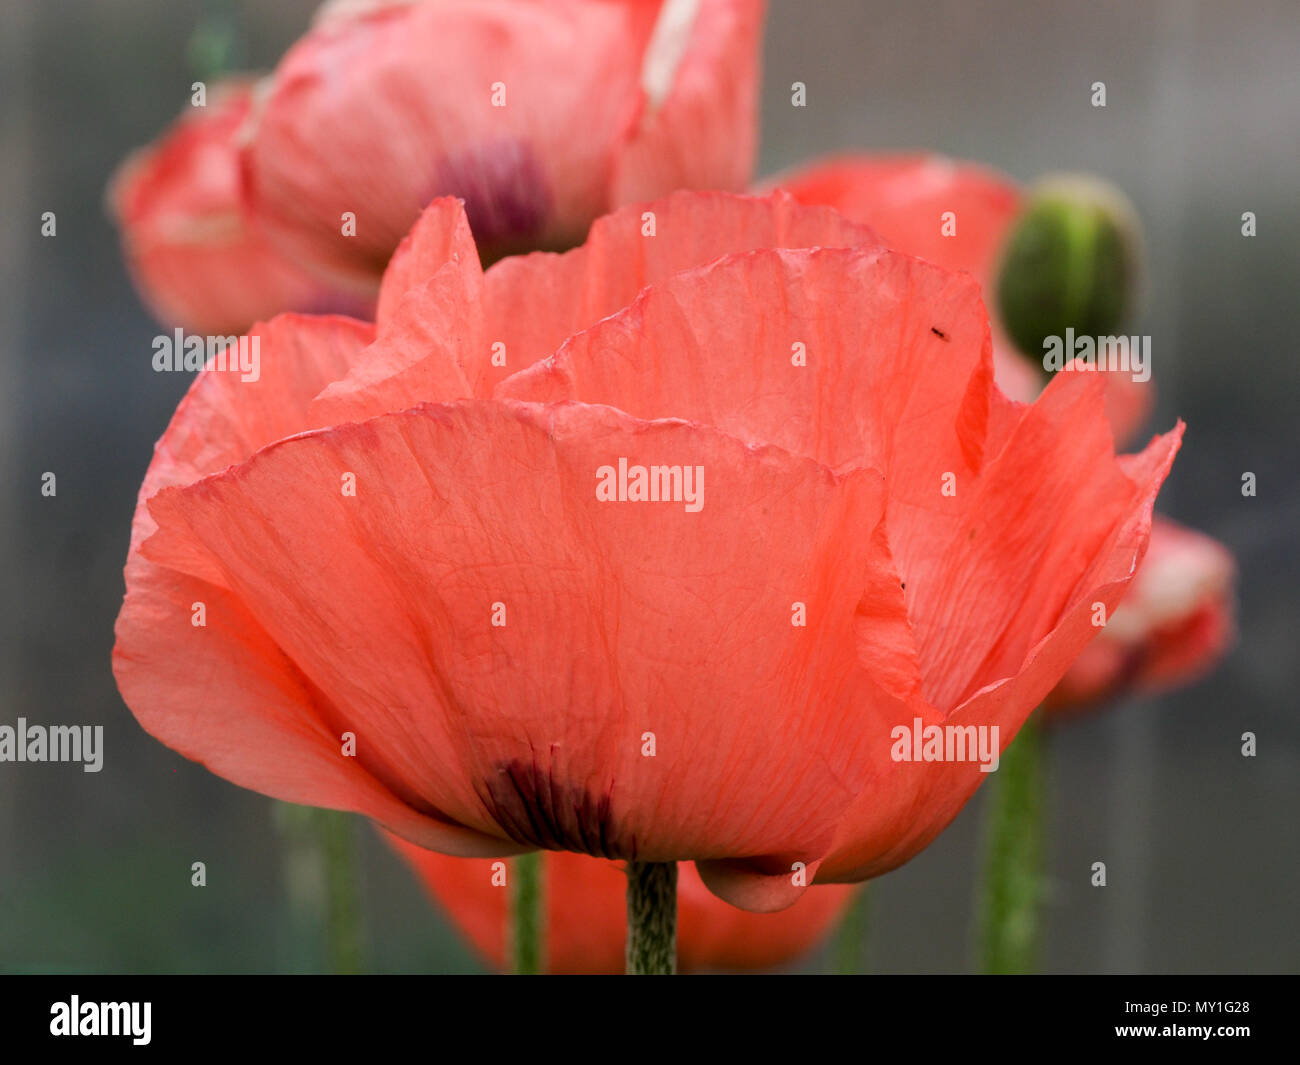 A close up of a single pink flower of the poppy Fruit Punch Stock Photo